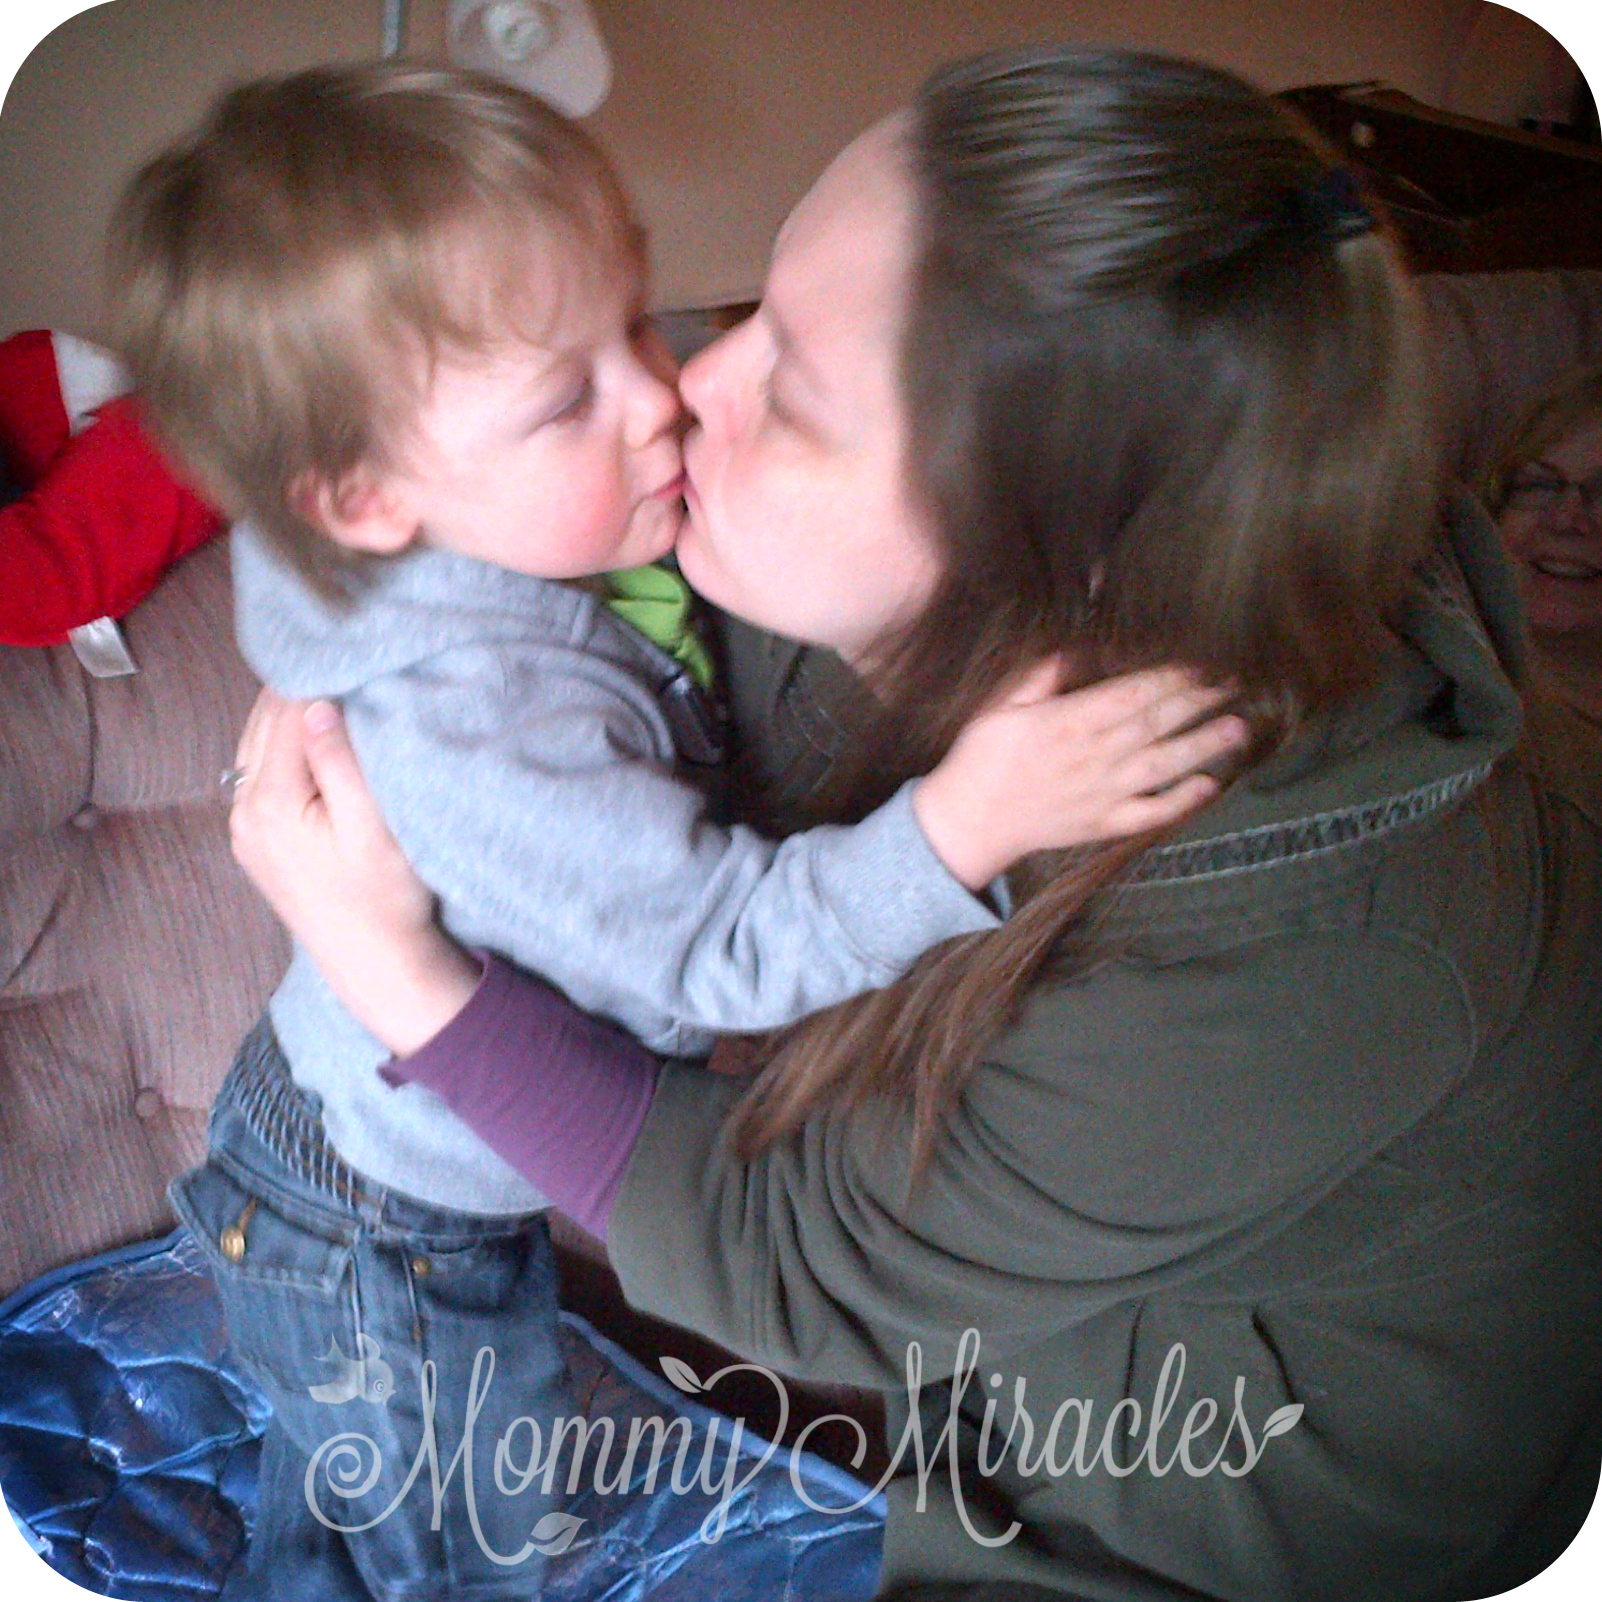 mommy-miracles.com_wp-content_uploads_2012_05_Goodbye-Kiss